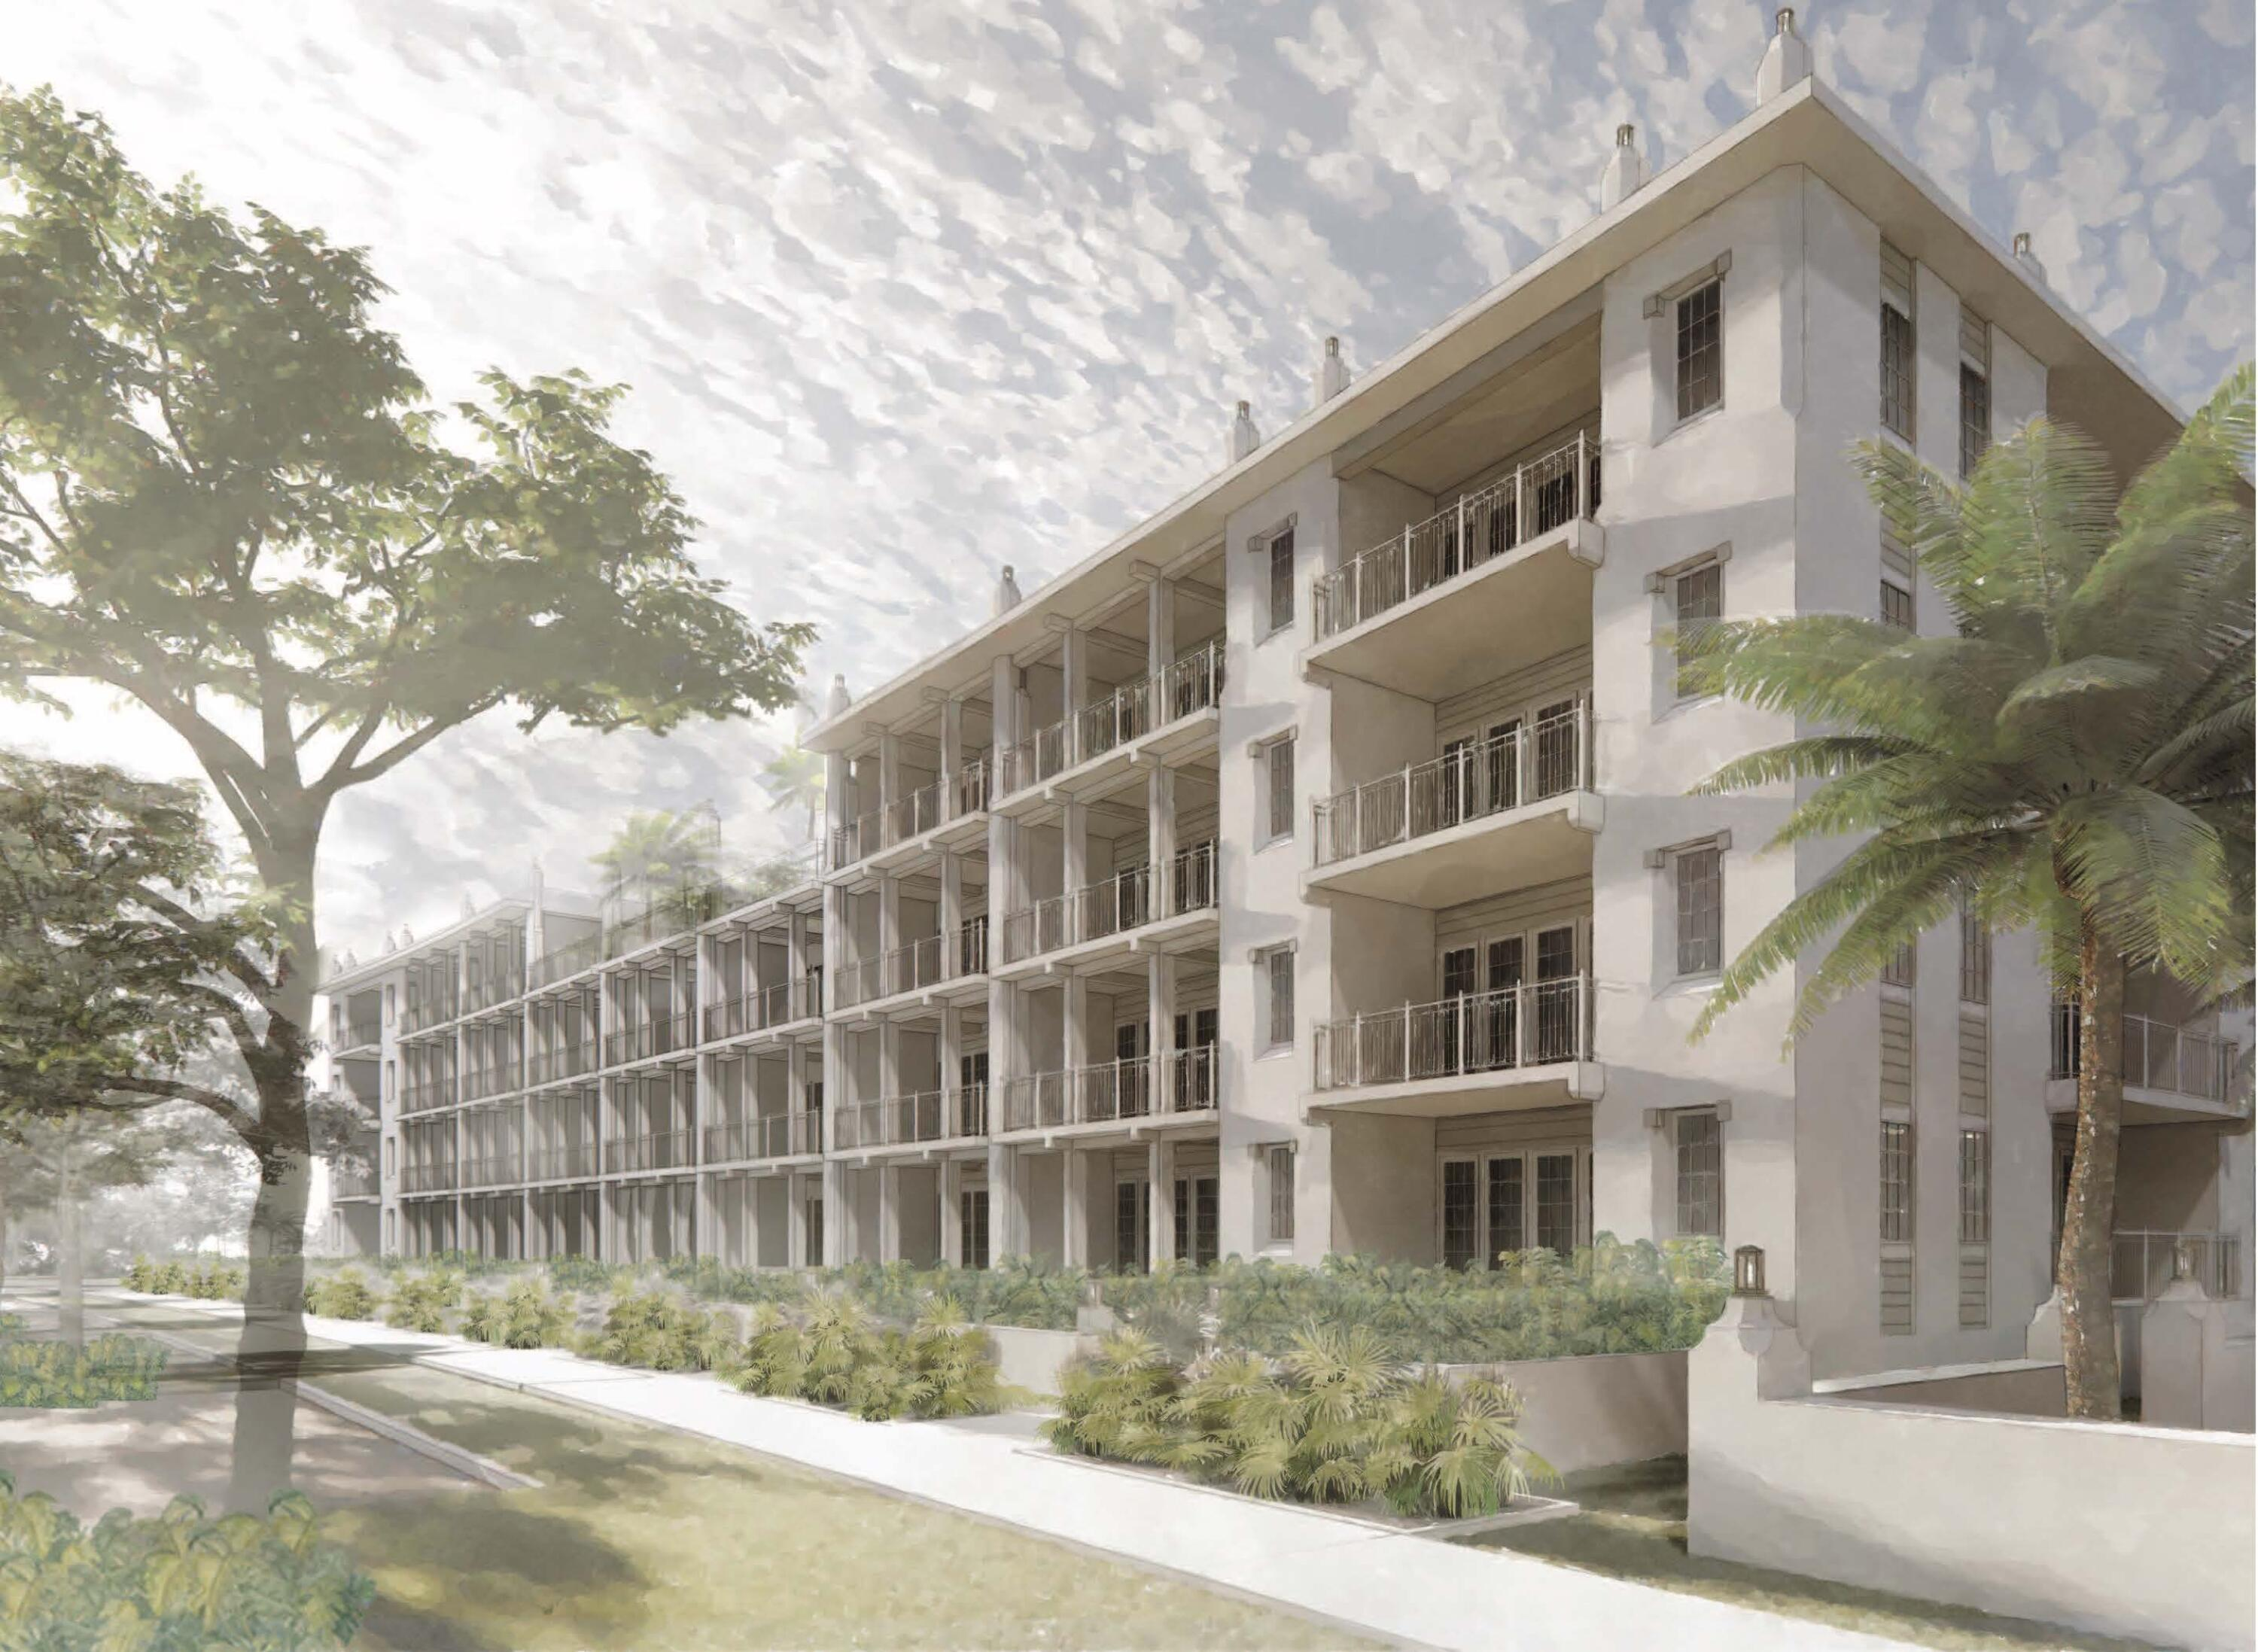 TBD Solaire Way Penthouse 2, Inlet Beach, FL 32461